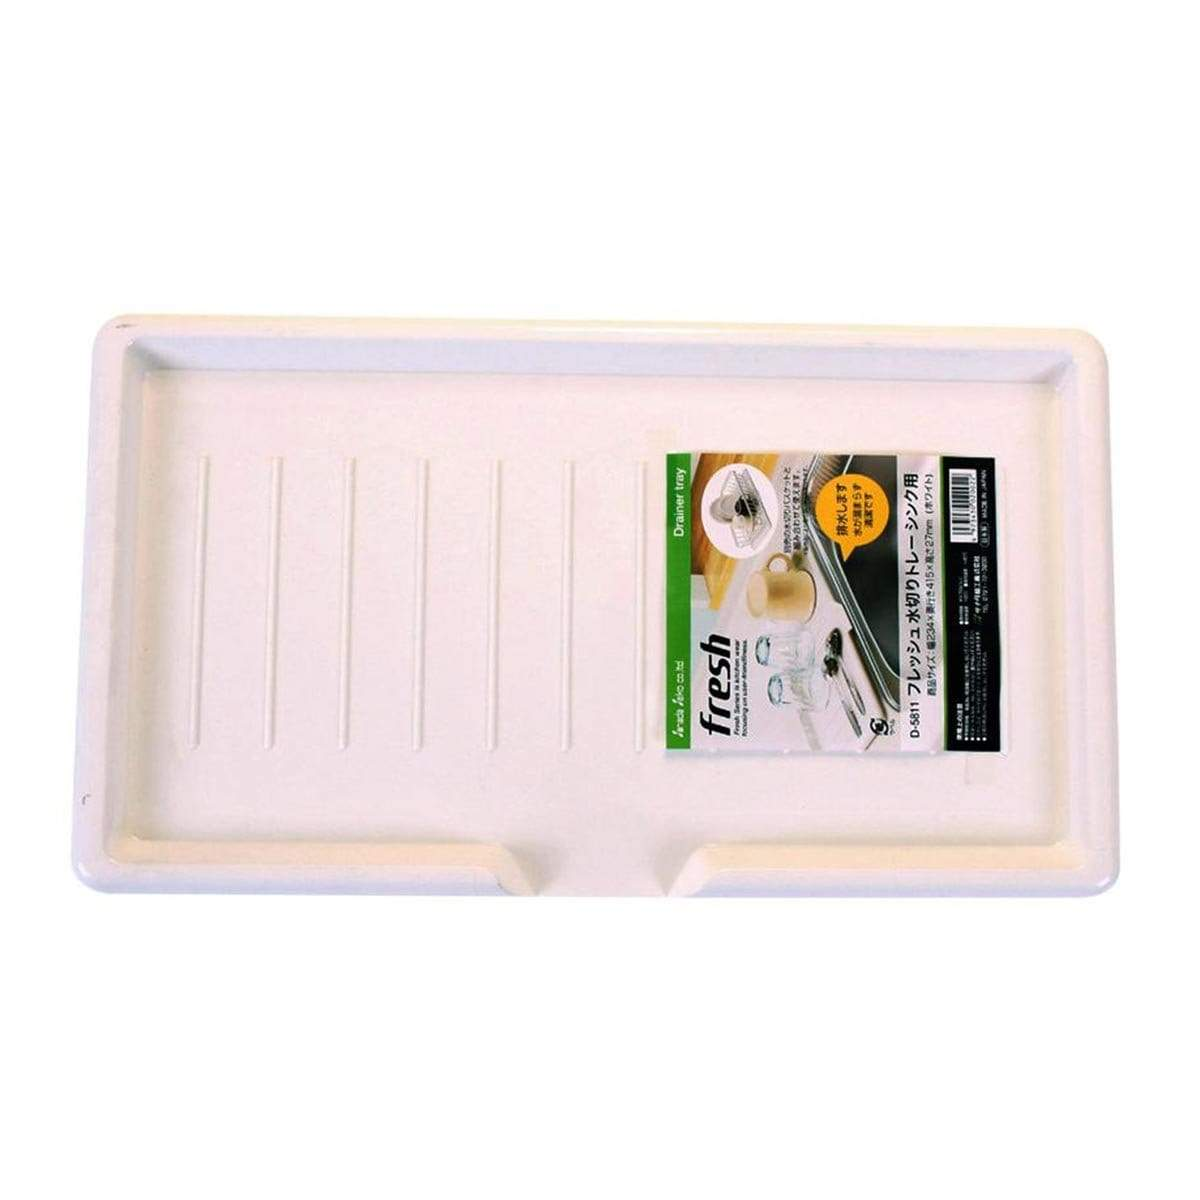 Japanese Plastic Drainage Tray For Sink White